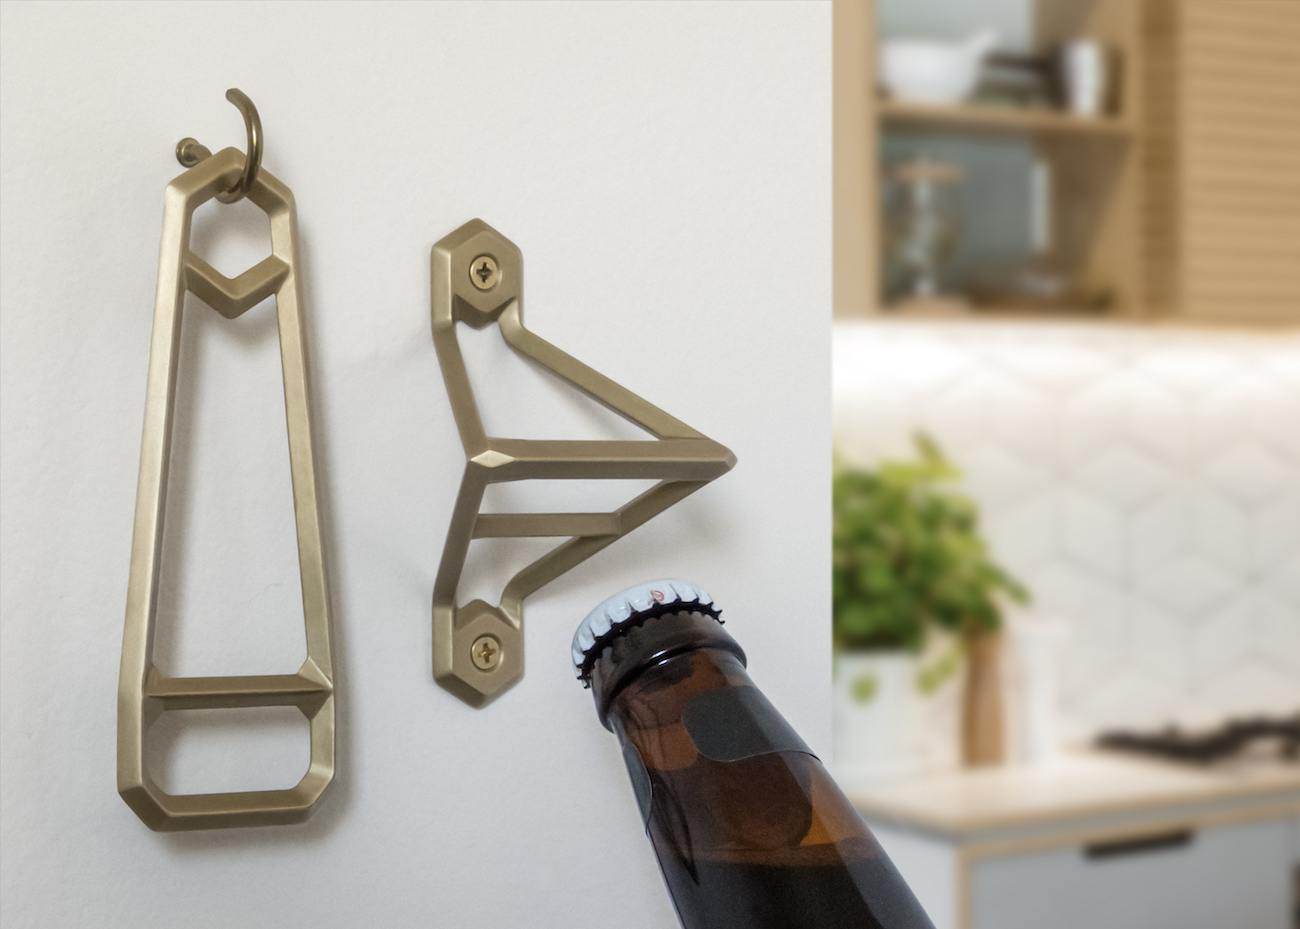 Leverage Brass Bottle Openers by Wander Workshop